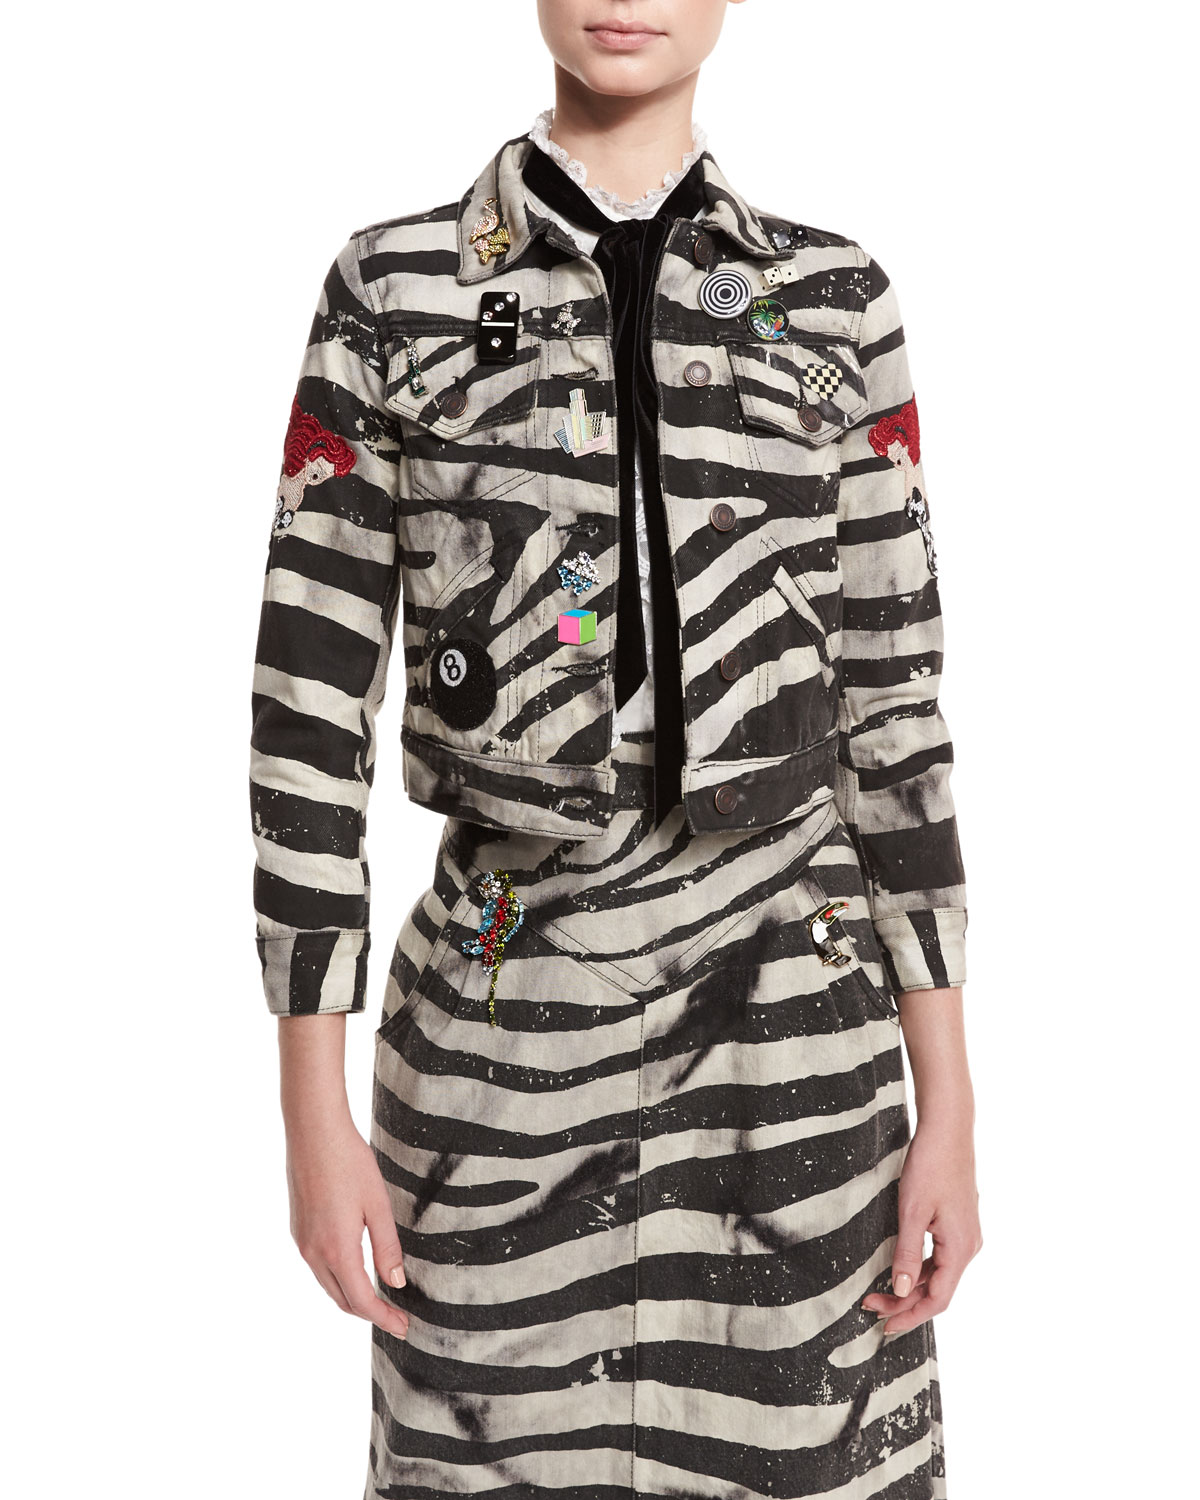 Embellished Zebra-Print Denim Jacket, White